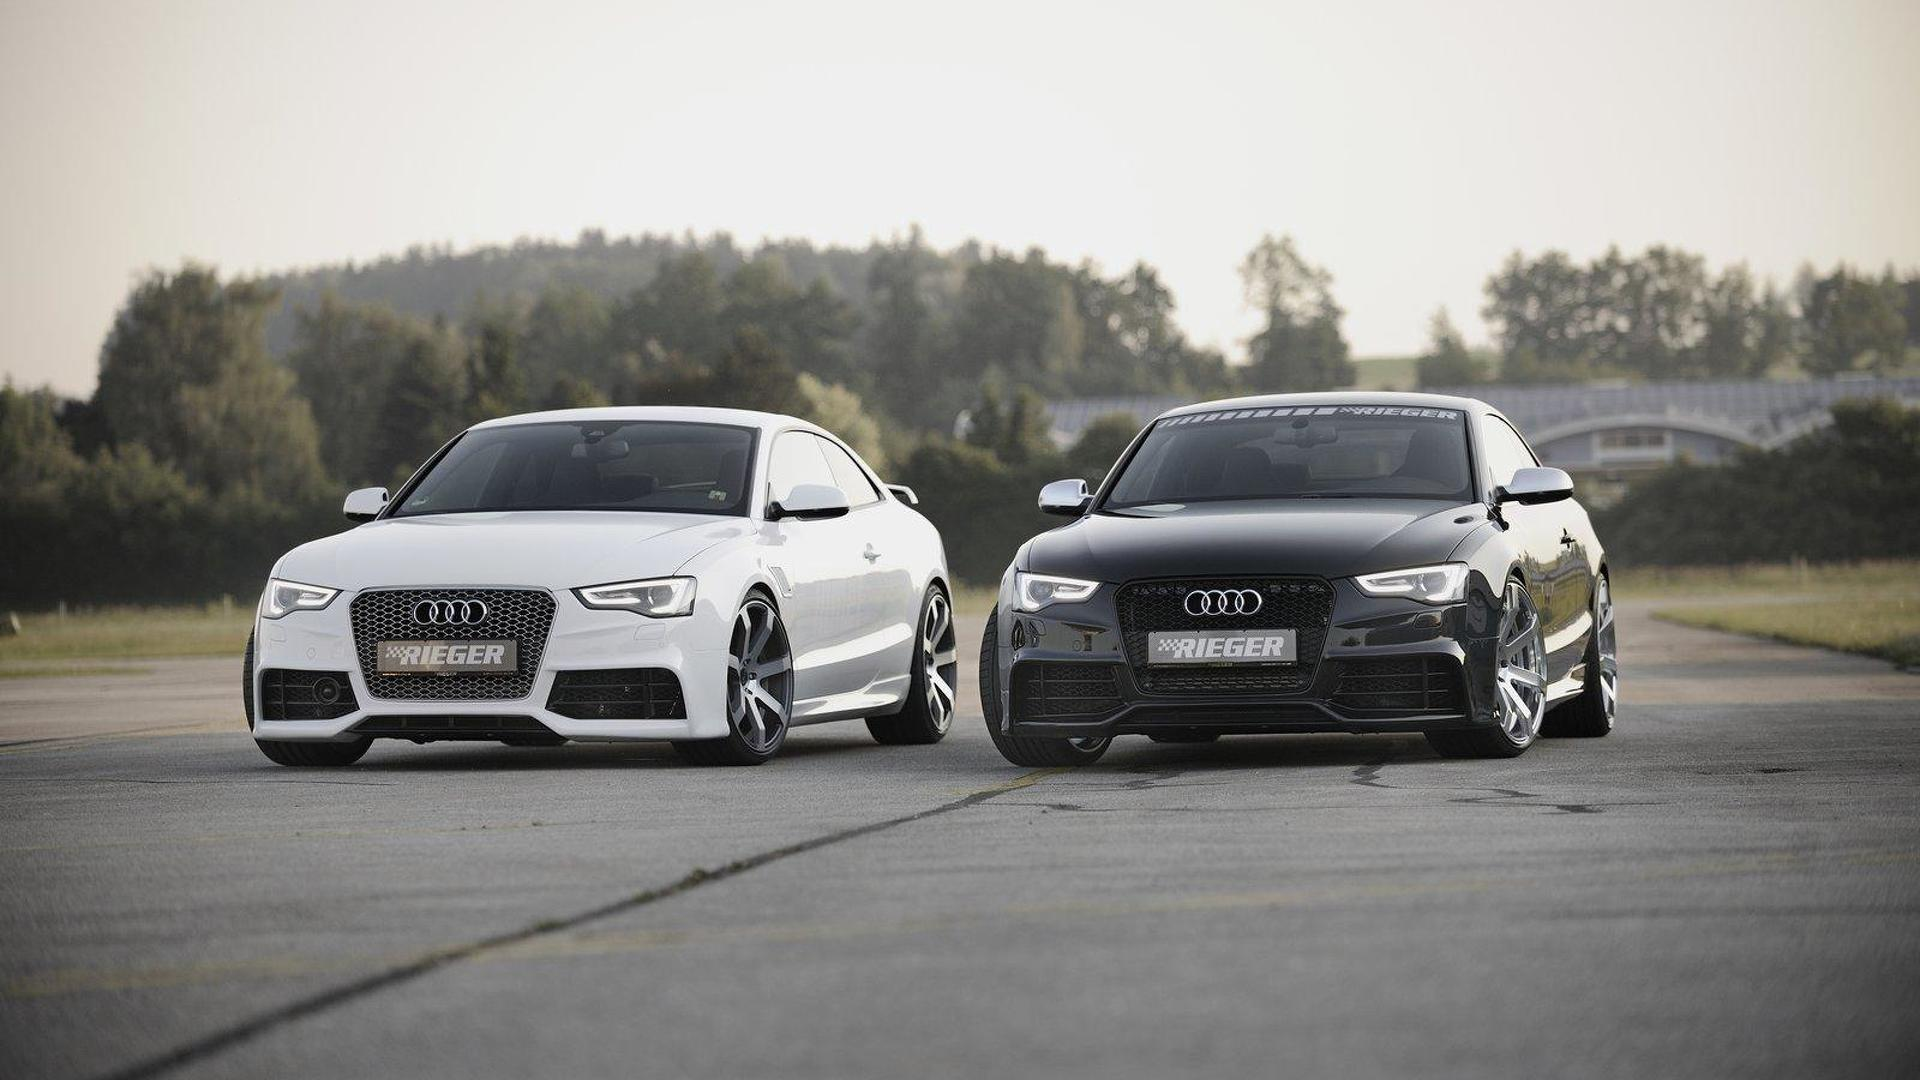 Audi A5 Facelift By Rieger 27 06 2012 987872